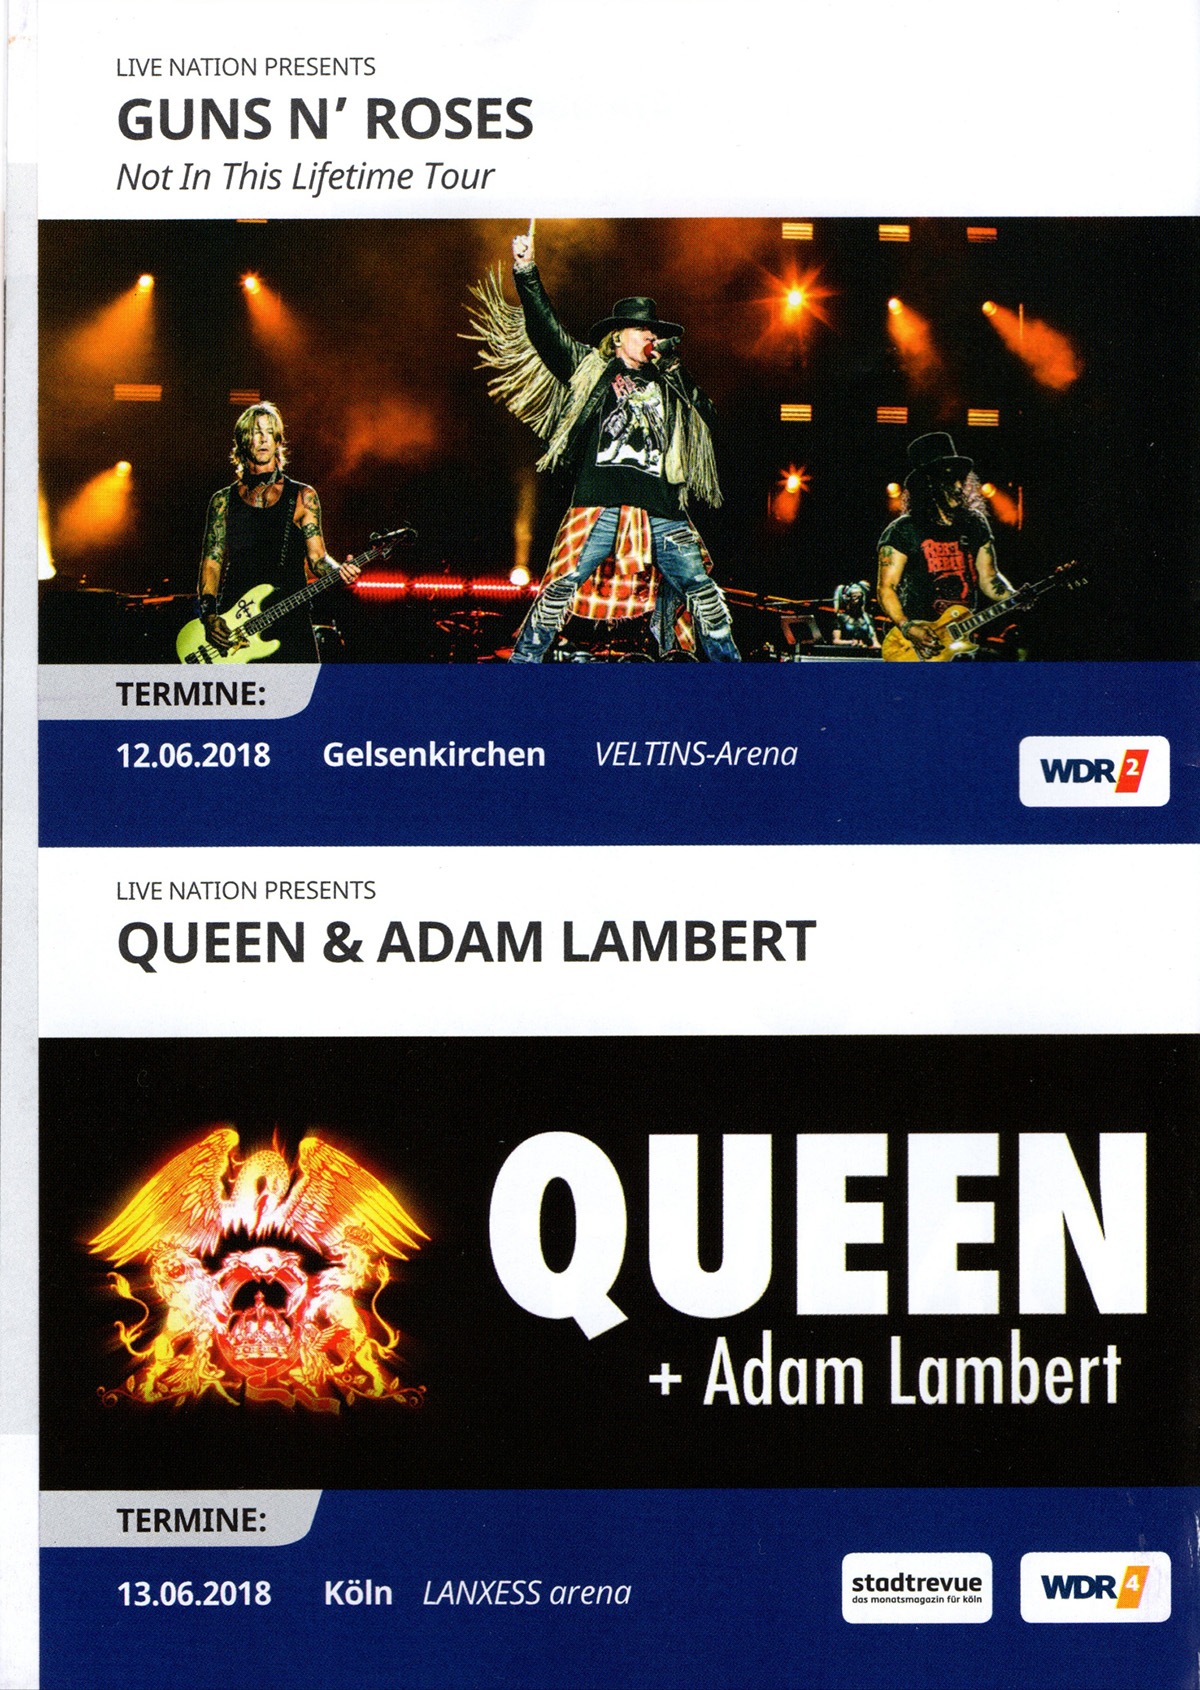 Queen + Adam Lambert in Cologne on 13.06.2018